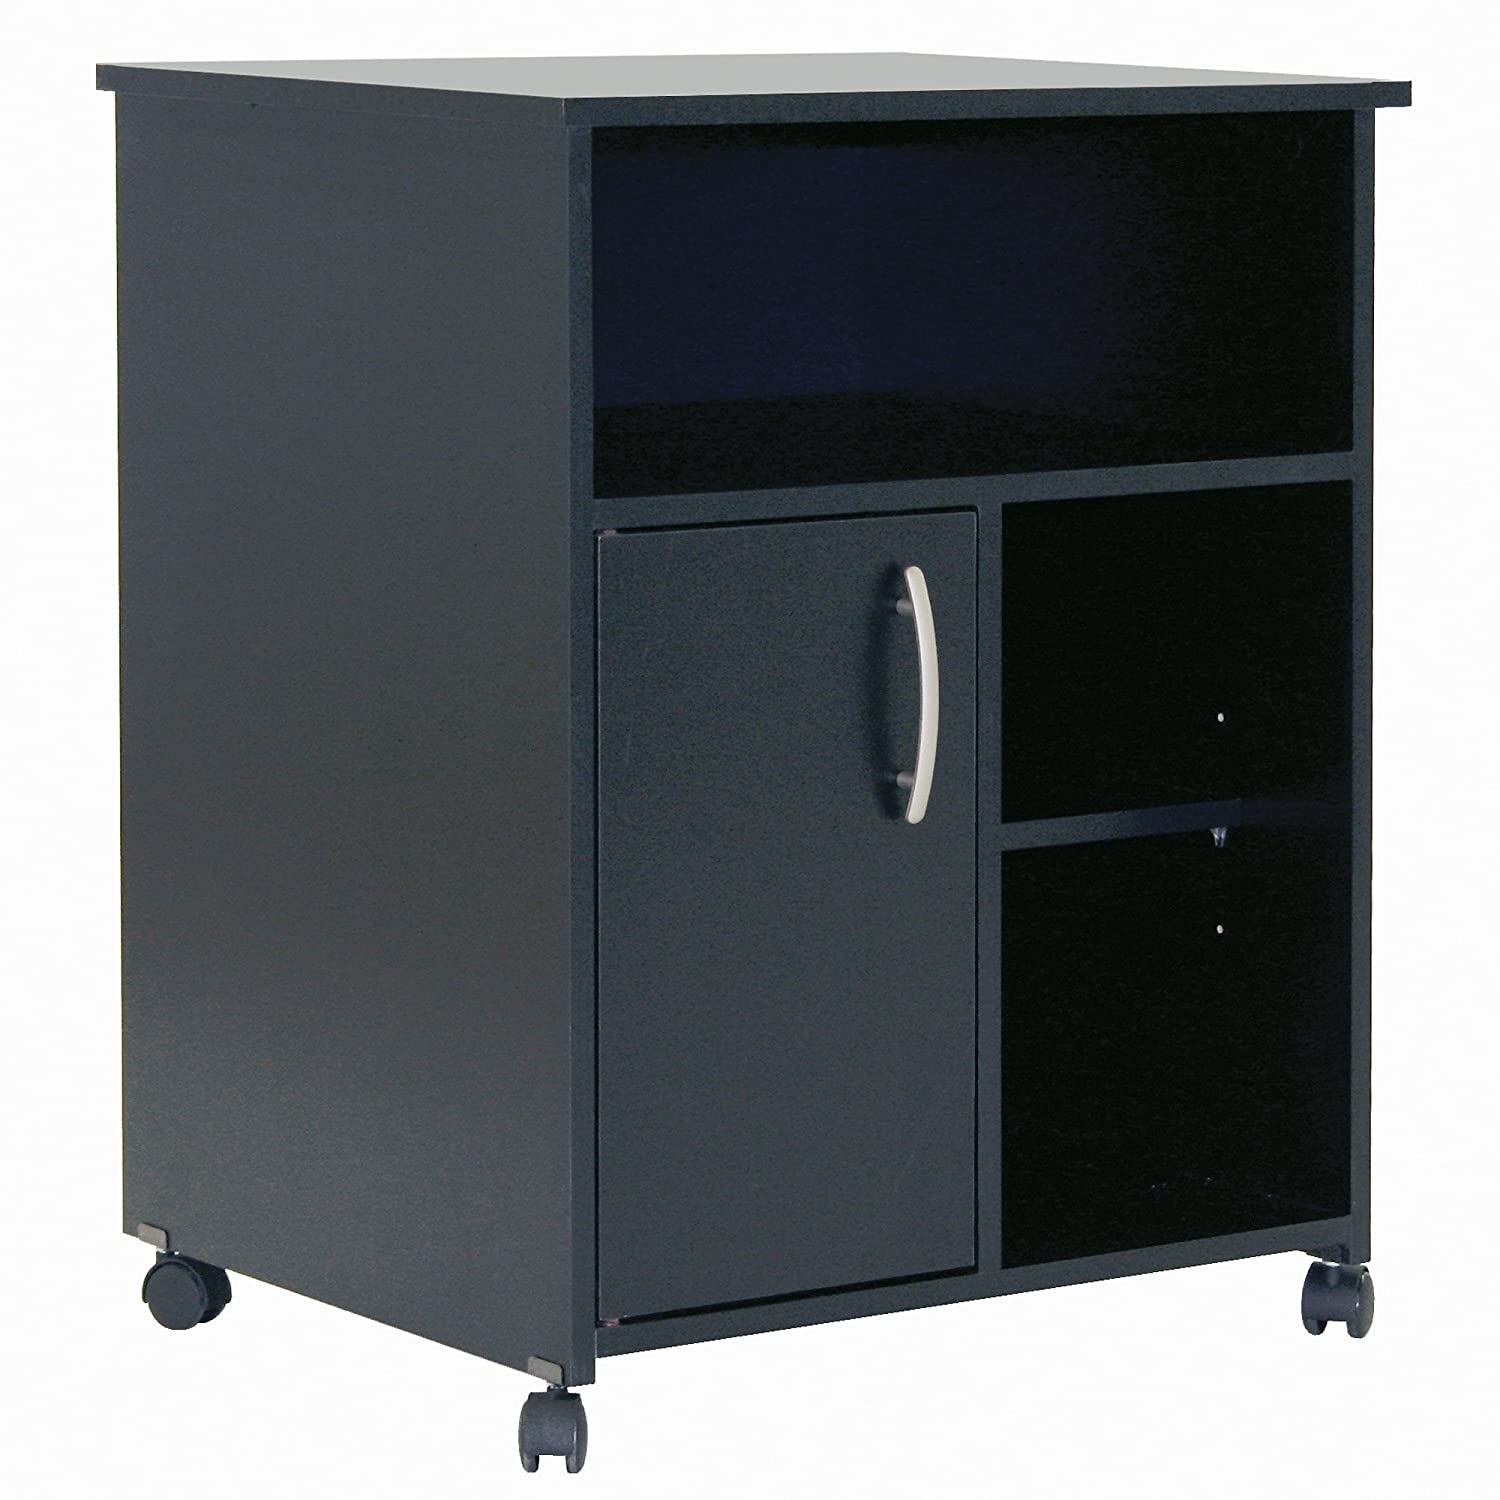 South Shore Fiesta Microwave Cart with Storage on Wheels, Pure Black 7270B1